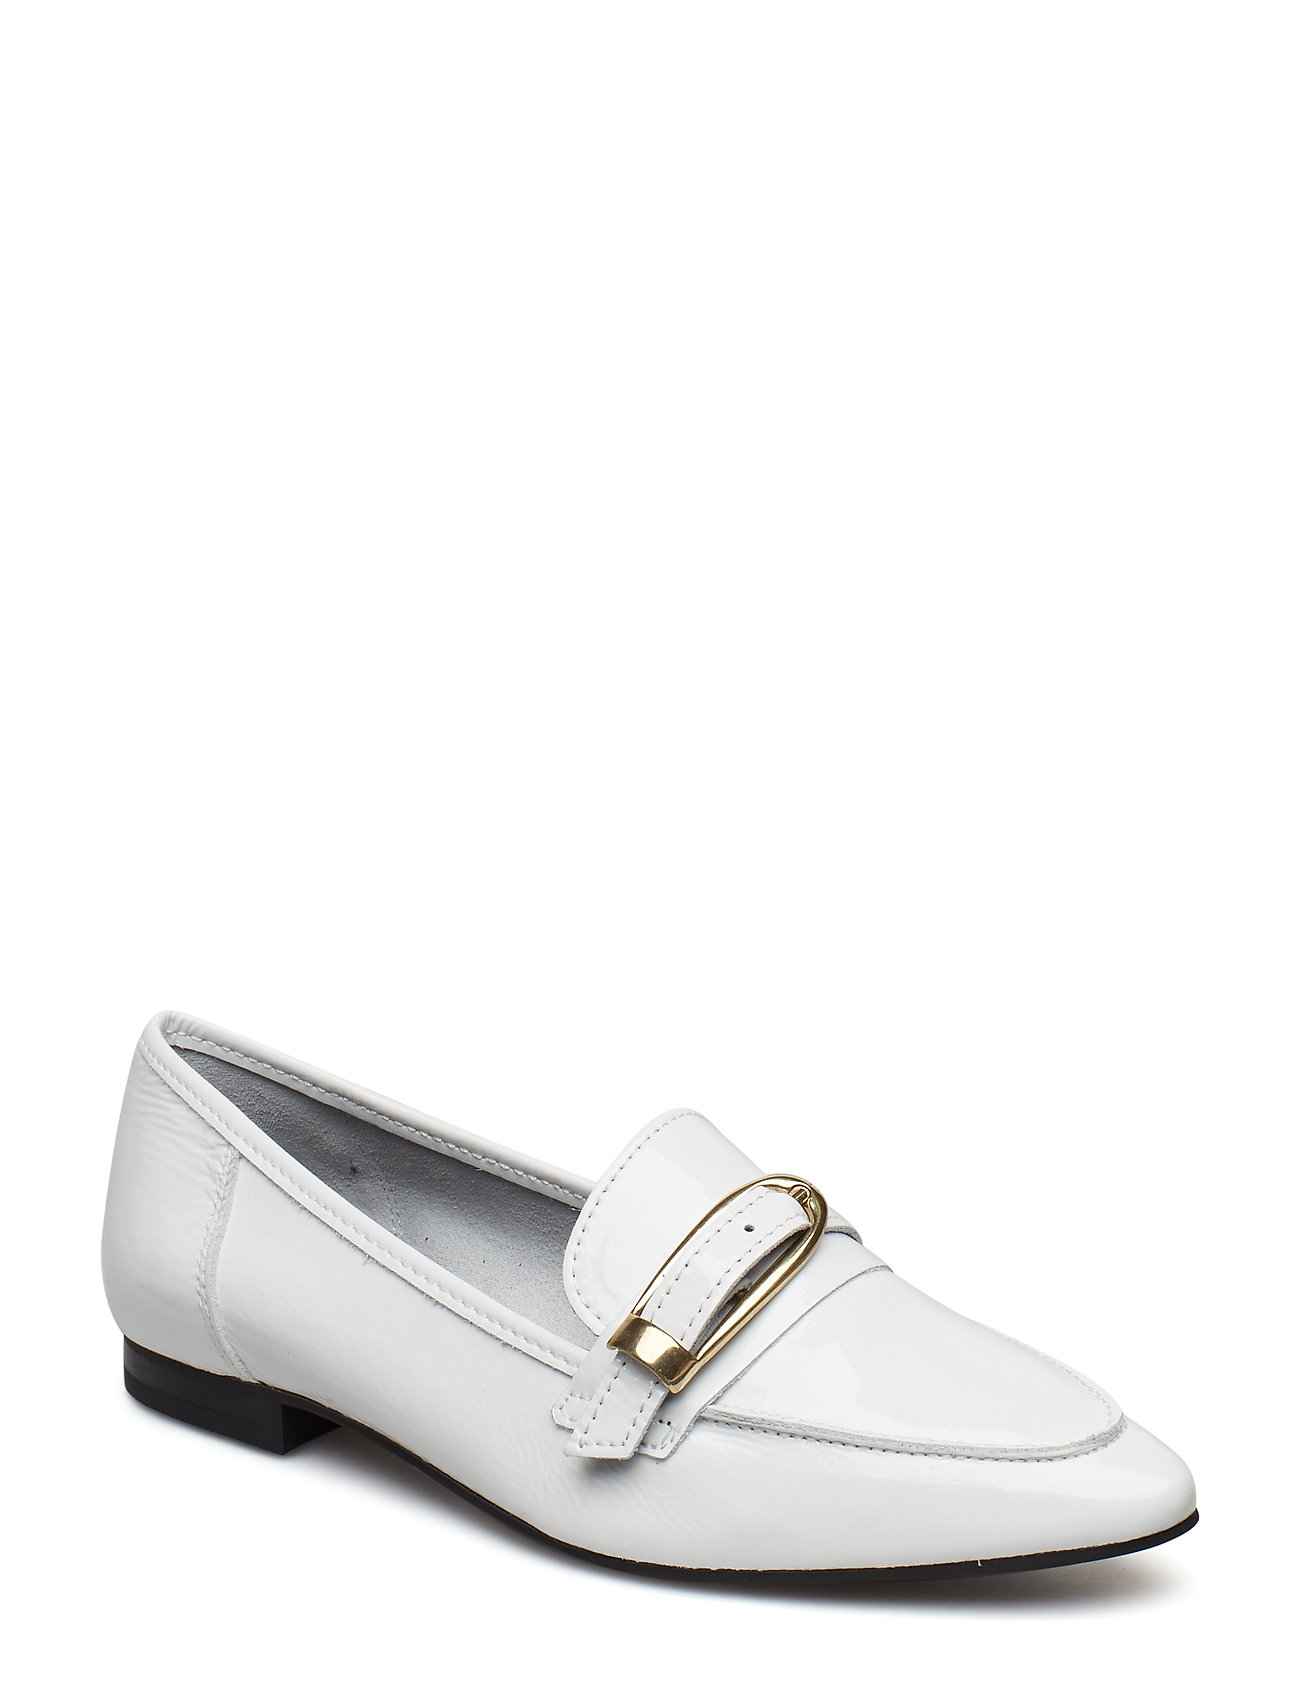 Bianco BIAALIAL Leather Buckle Loafer